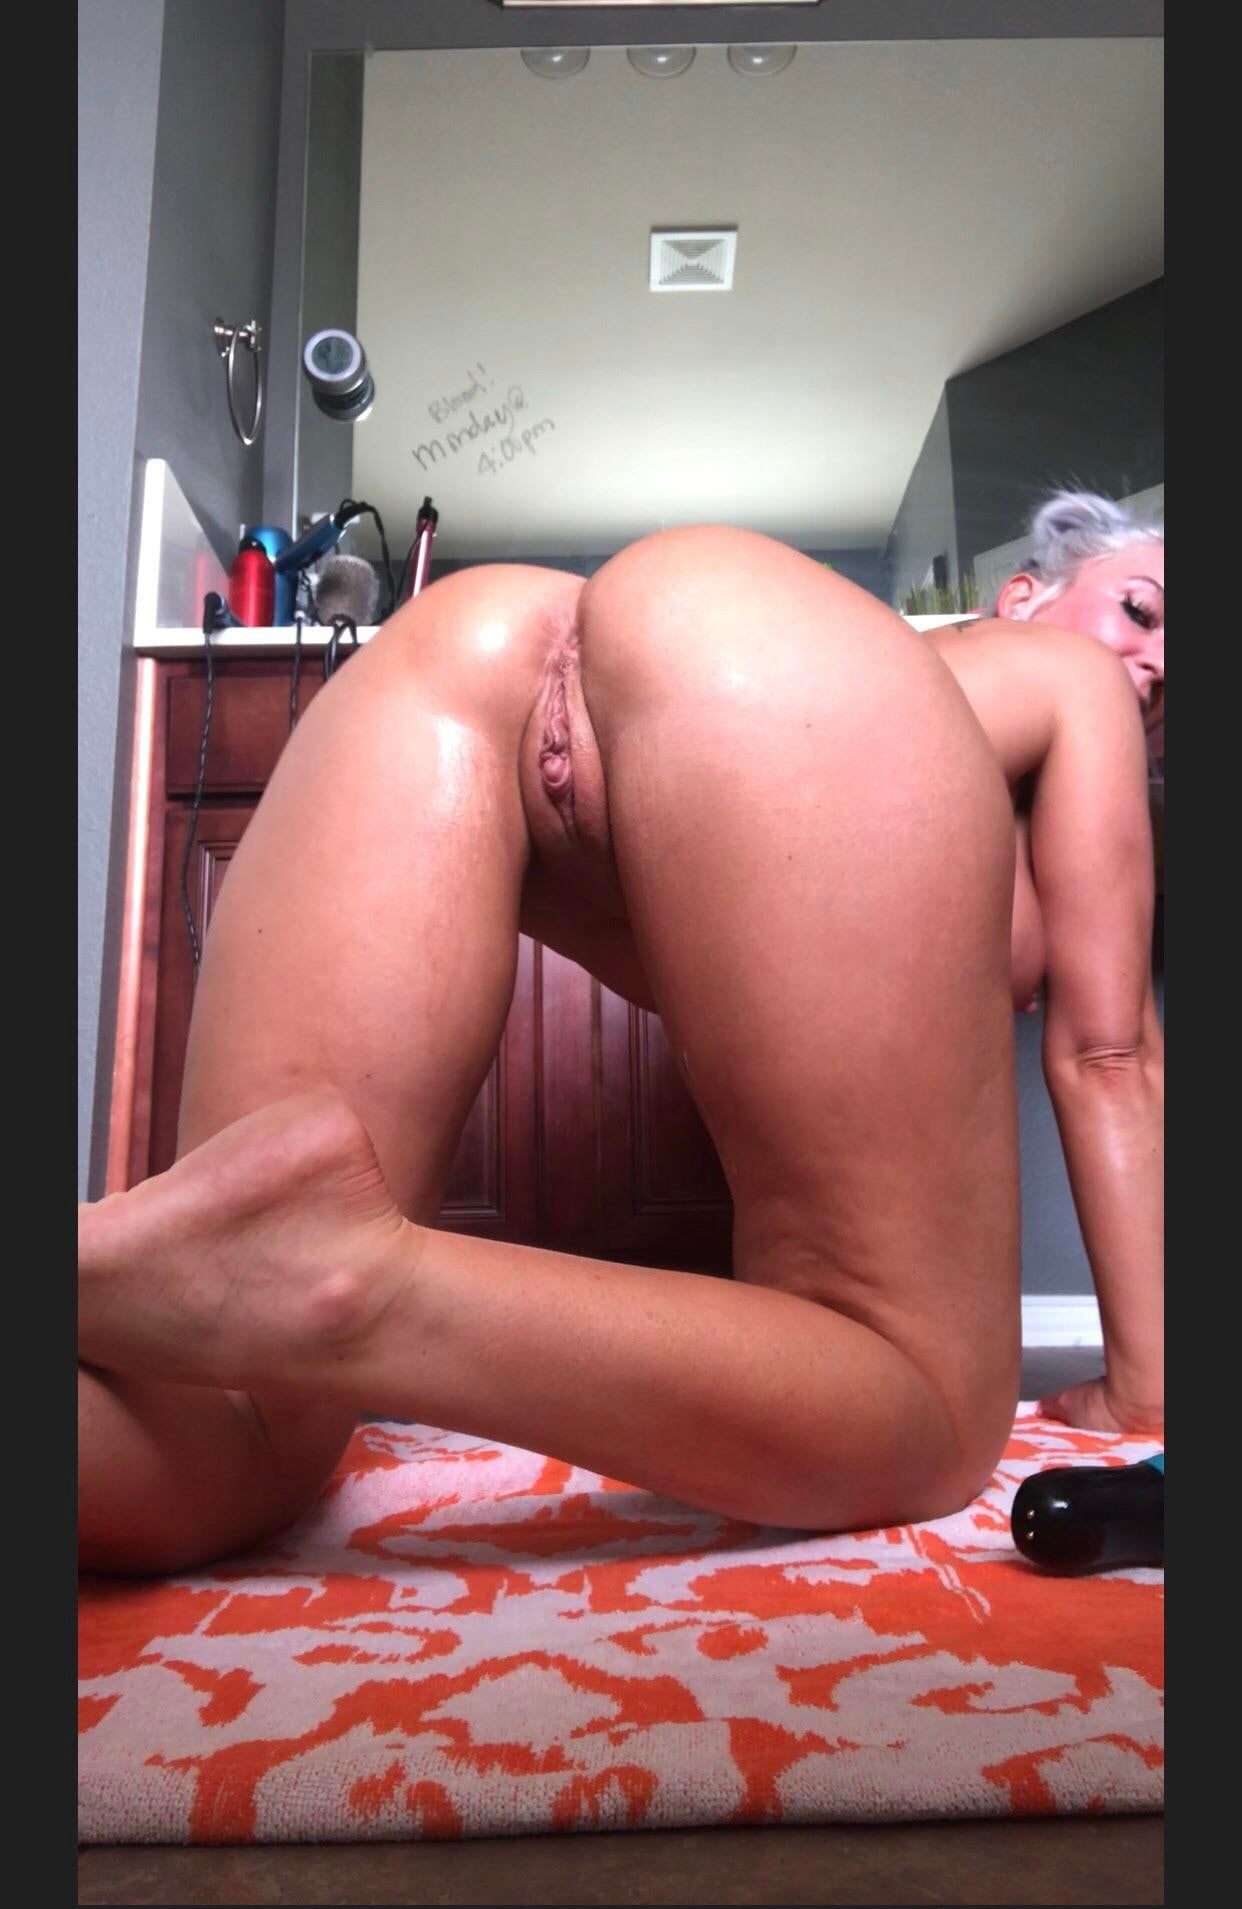 I want to watch my wife get fucked